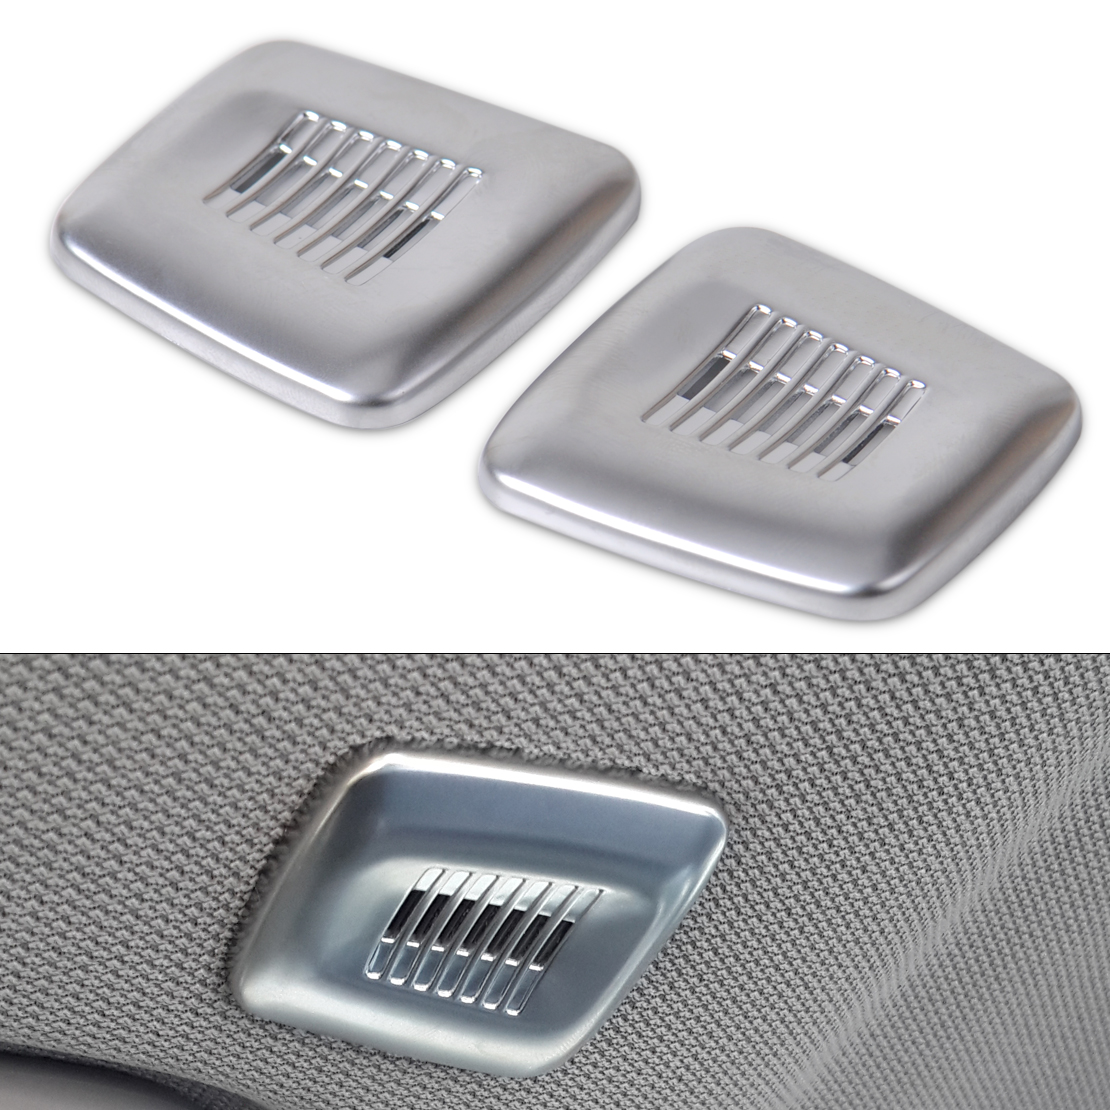 CITALL 2pcs Chrome <font><b>Interior</b></font> Roof Dome Microphone Cover <font><b>Trim</b></font> For <font><b>BMW</b></font> <font><b>F30</b></font> F32 F07 F10 F15 F12 F25 X3 X5 3 4 5 6 Series image